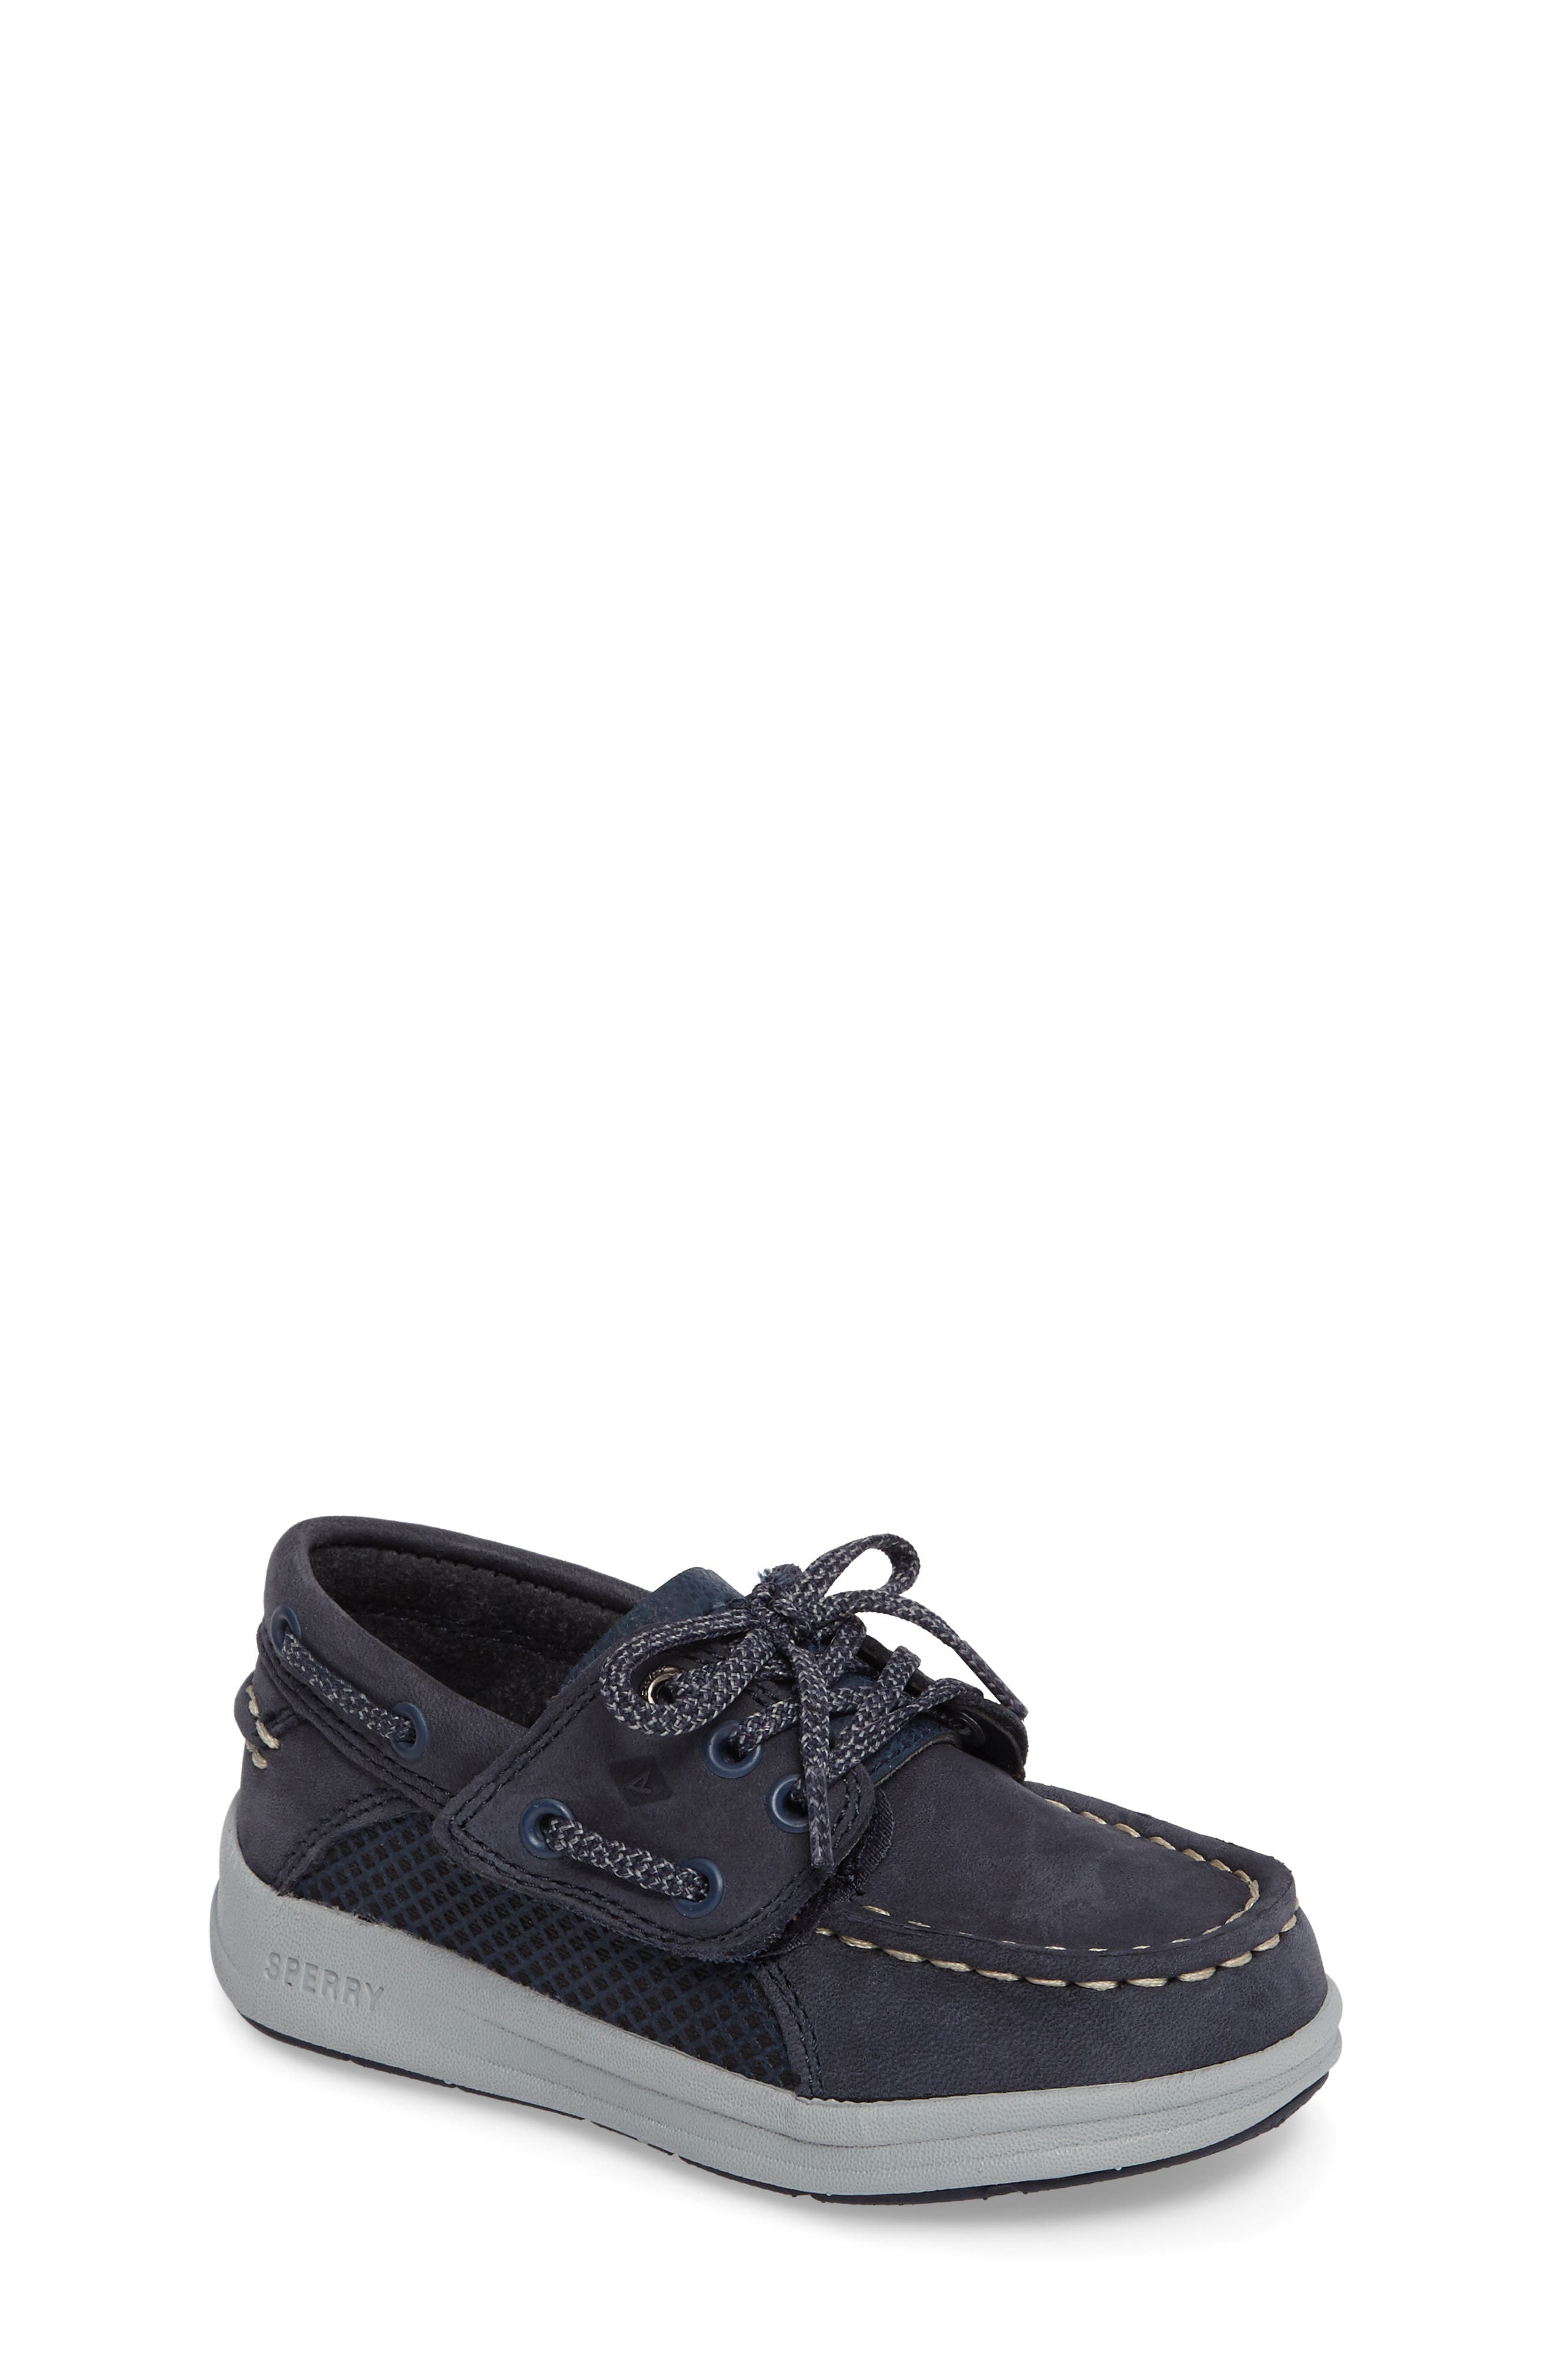 Sperry Kids Gamefish Boat Shoe (Walker & Toddler)